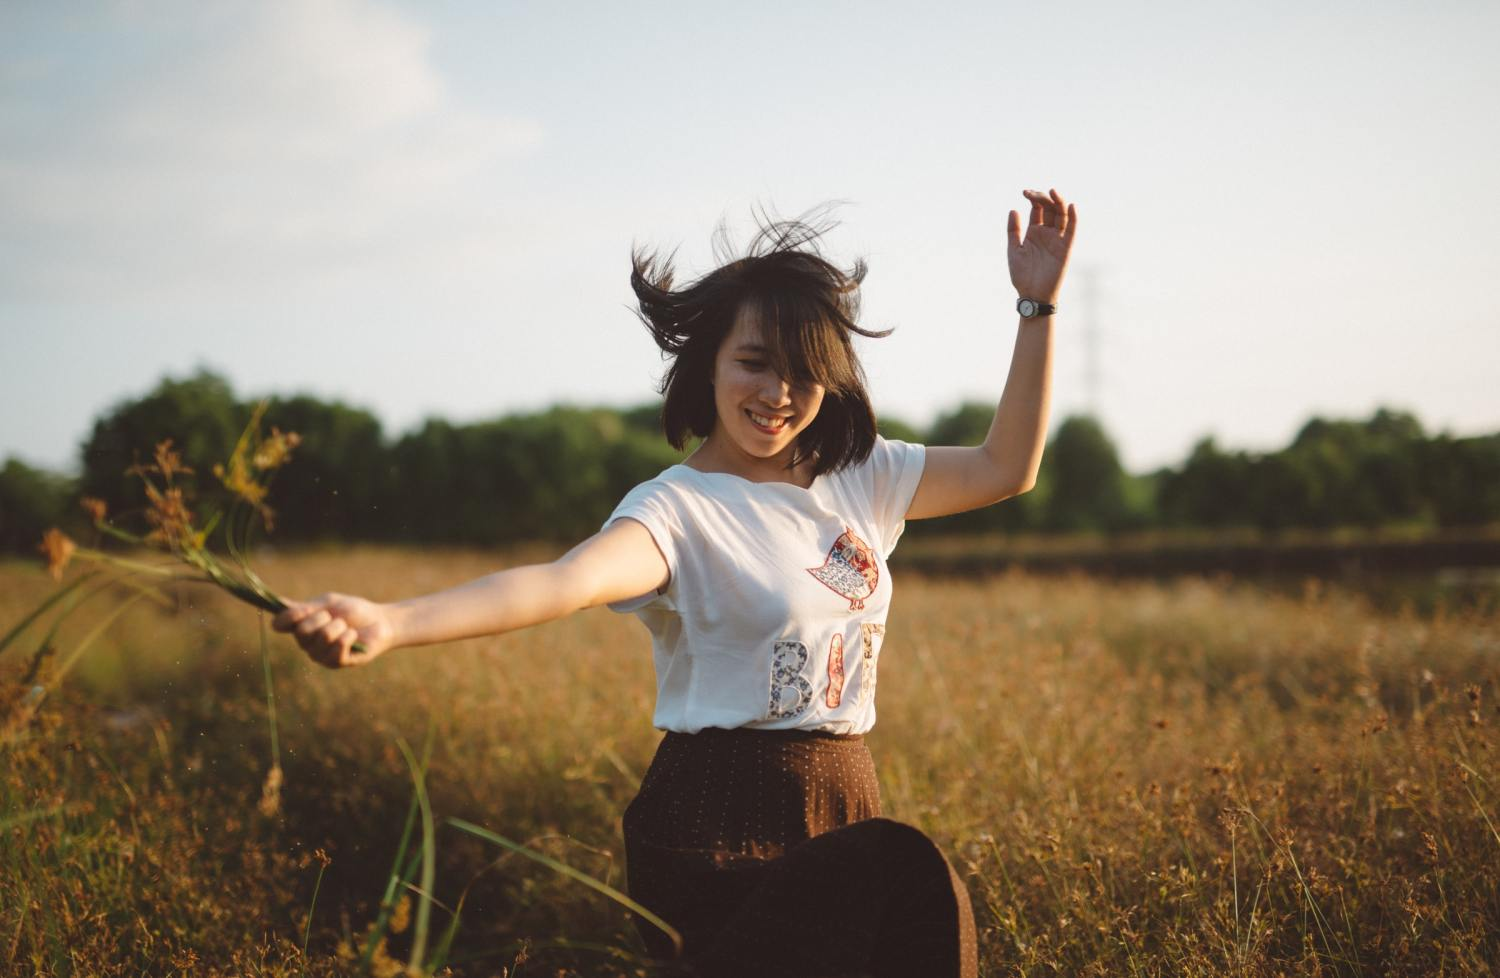 self-love: how to be your own cheerleader in 4 simple steps